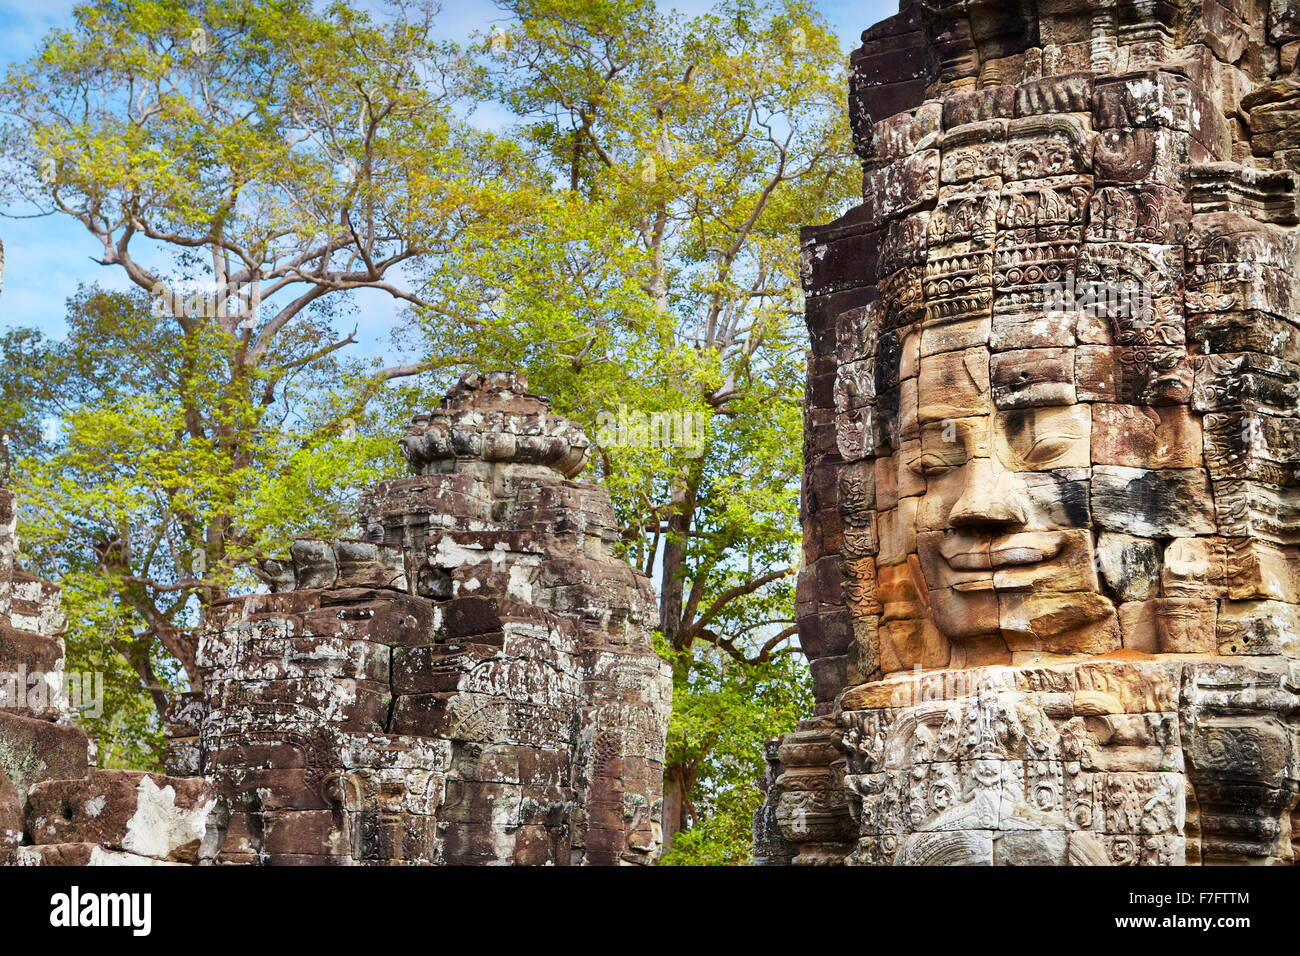 Faces of Bayon Temple, Angkor Thom, Cambodia, Asia - Stock Image